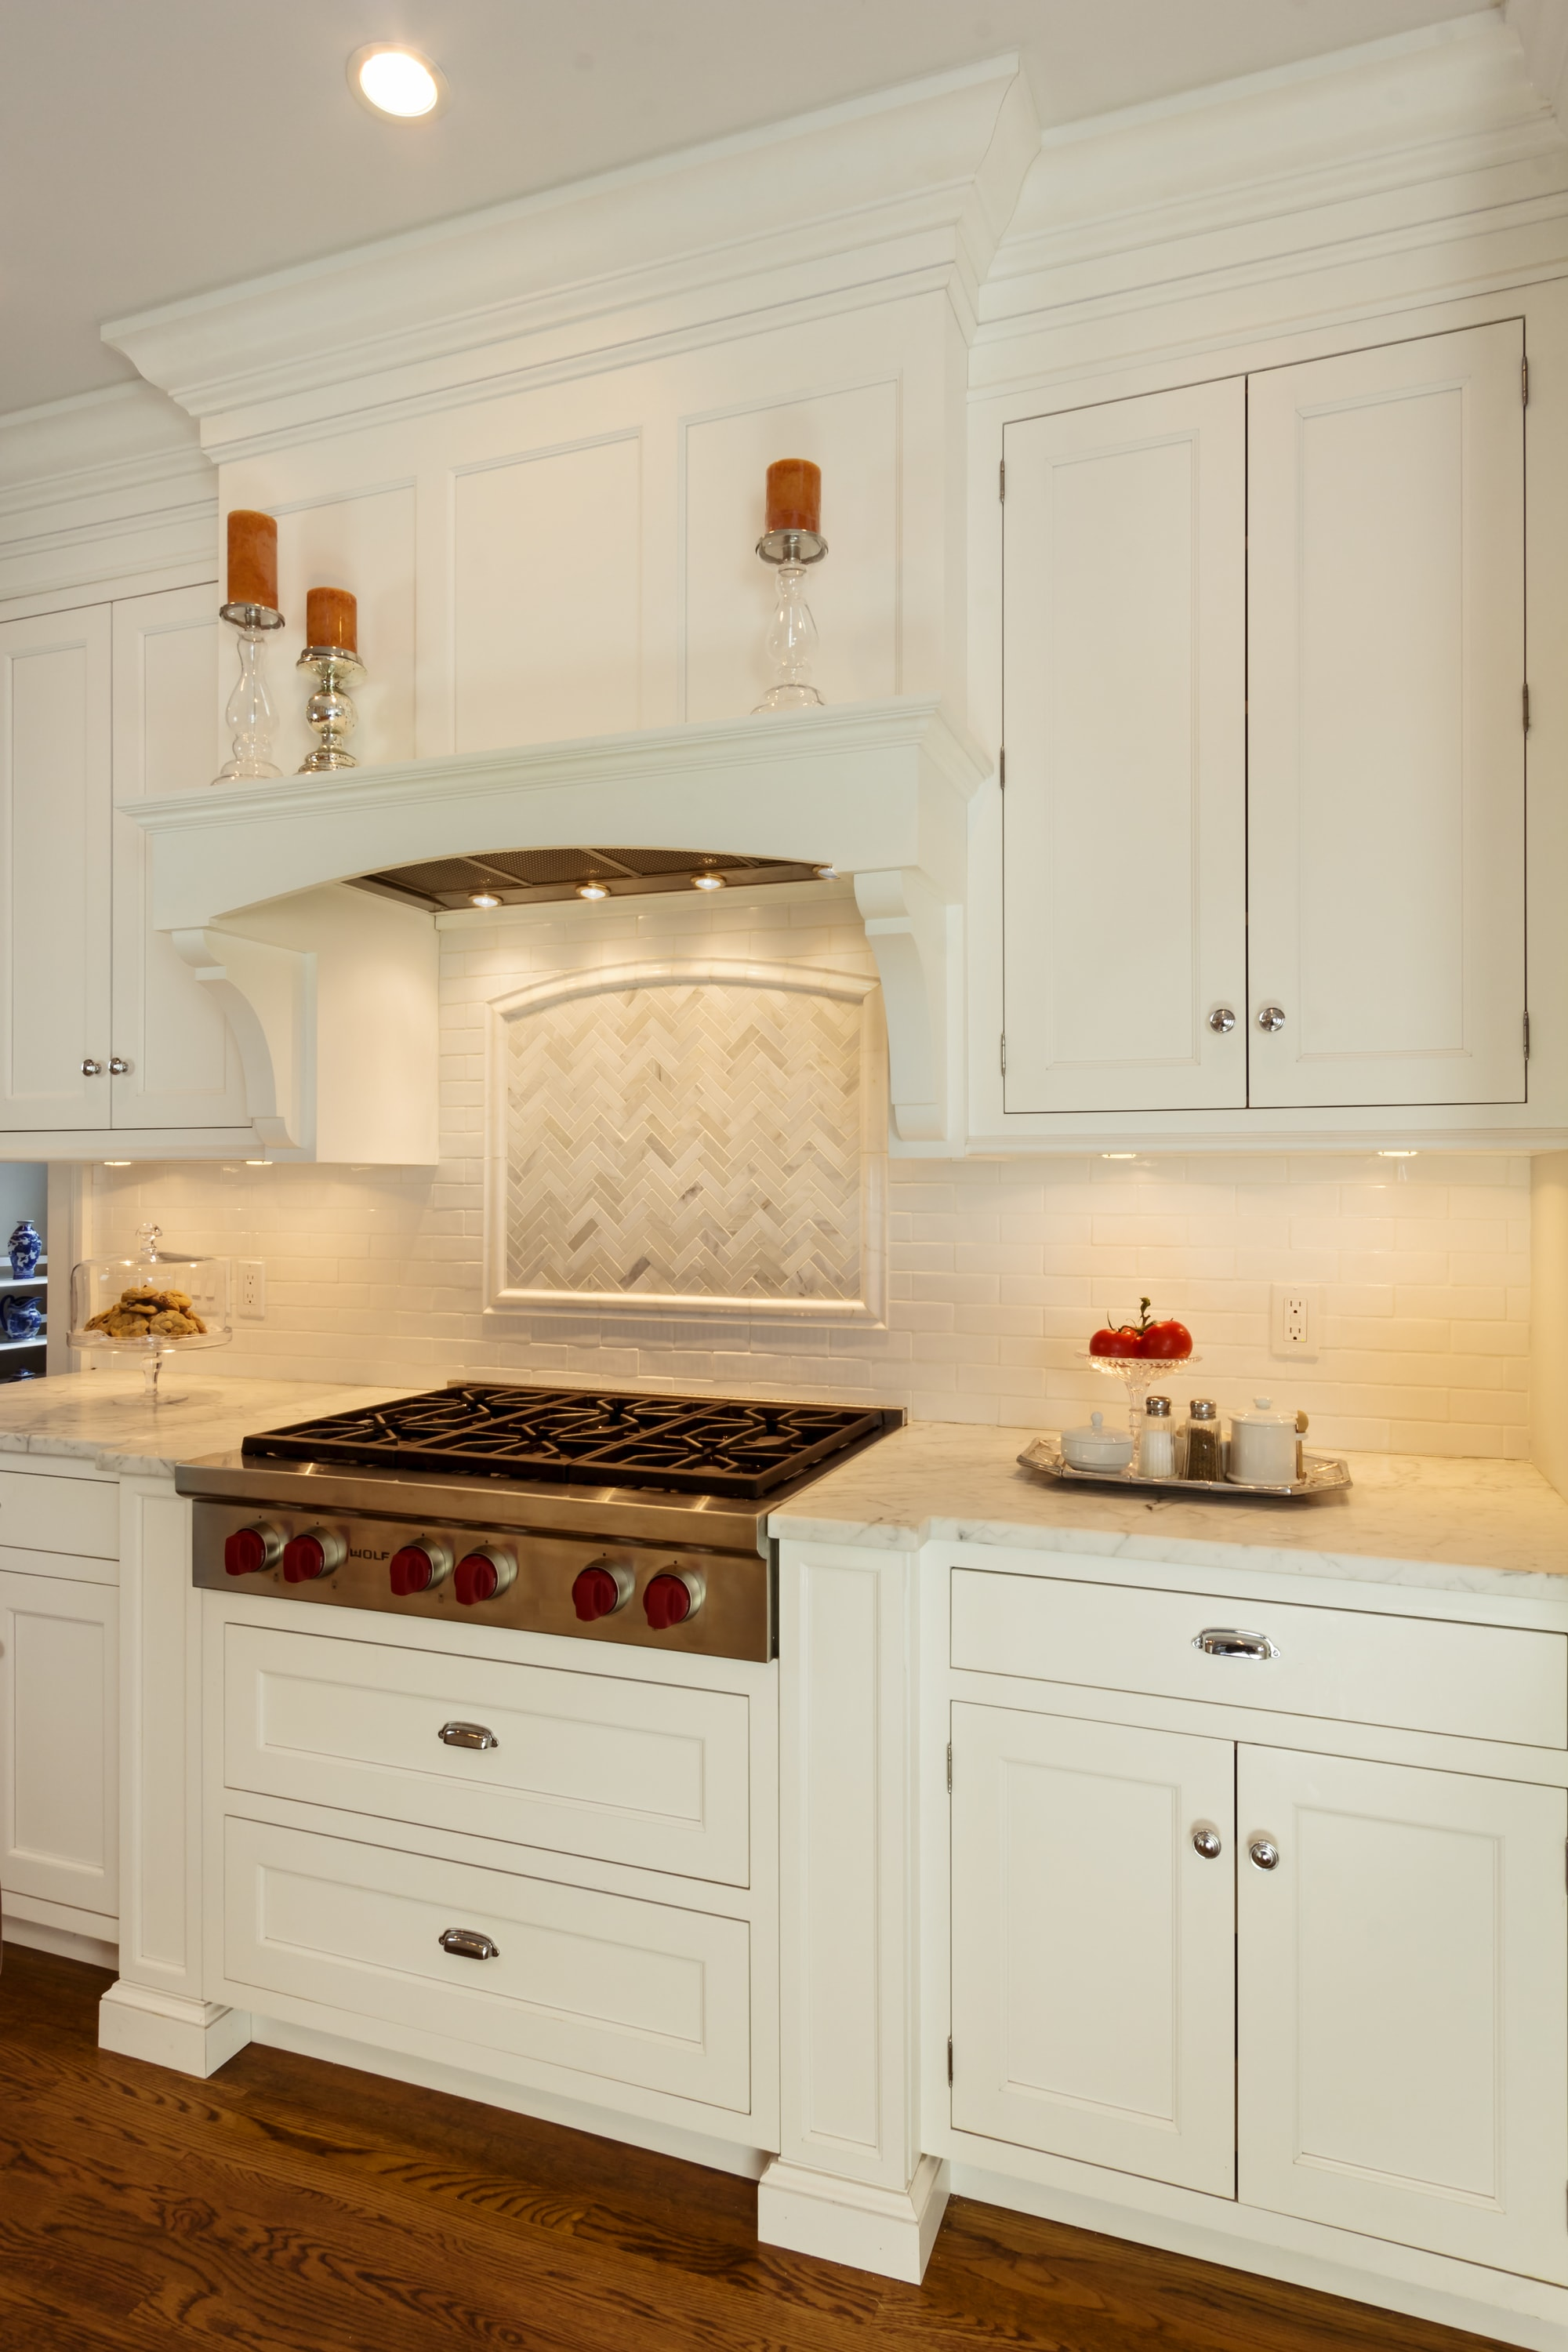 Transitional style kitchen with range and shelve